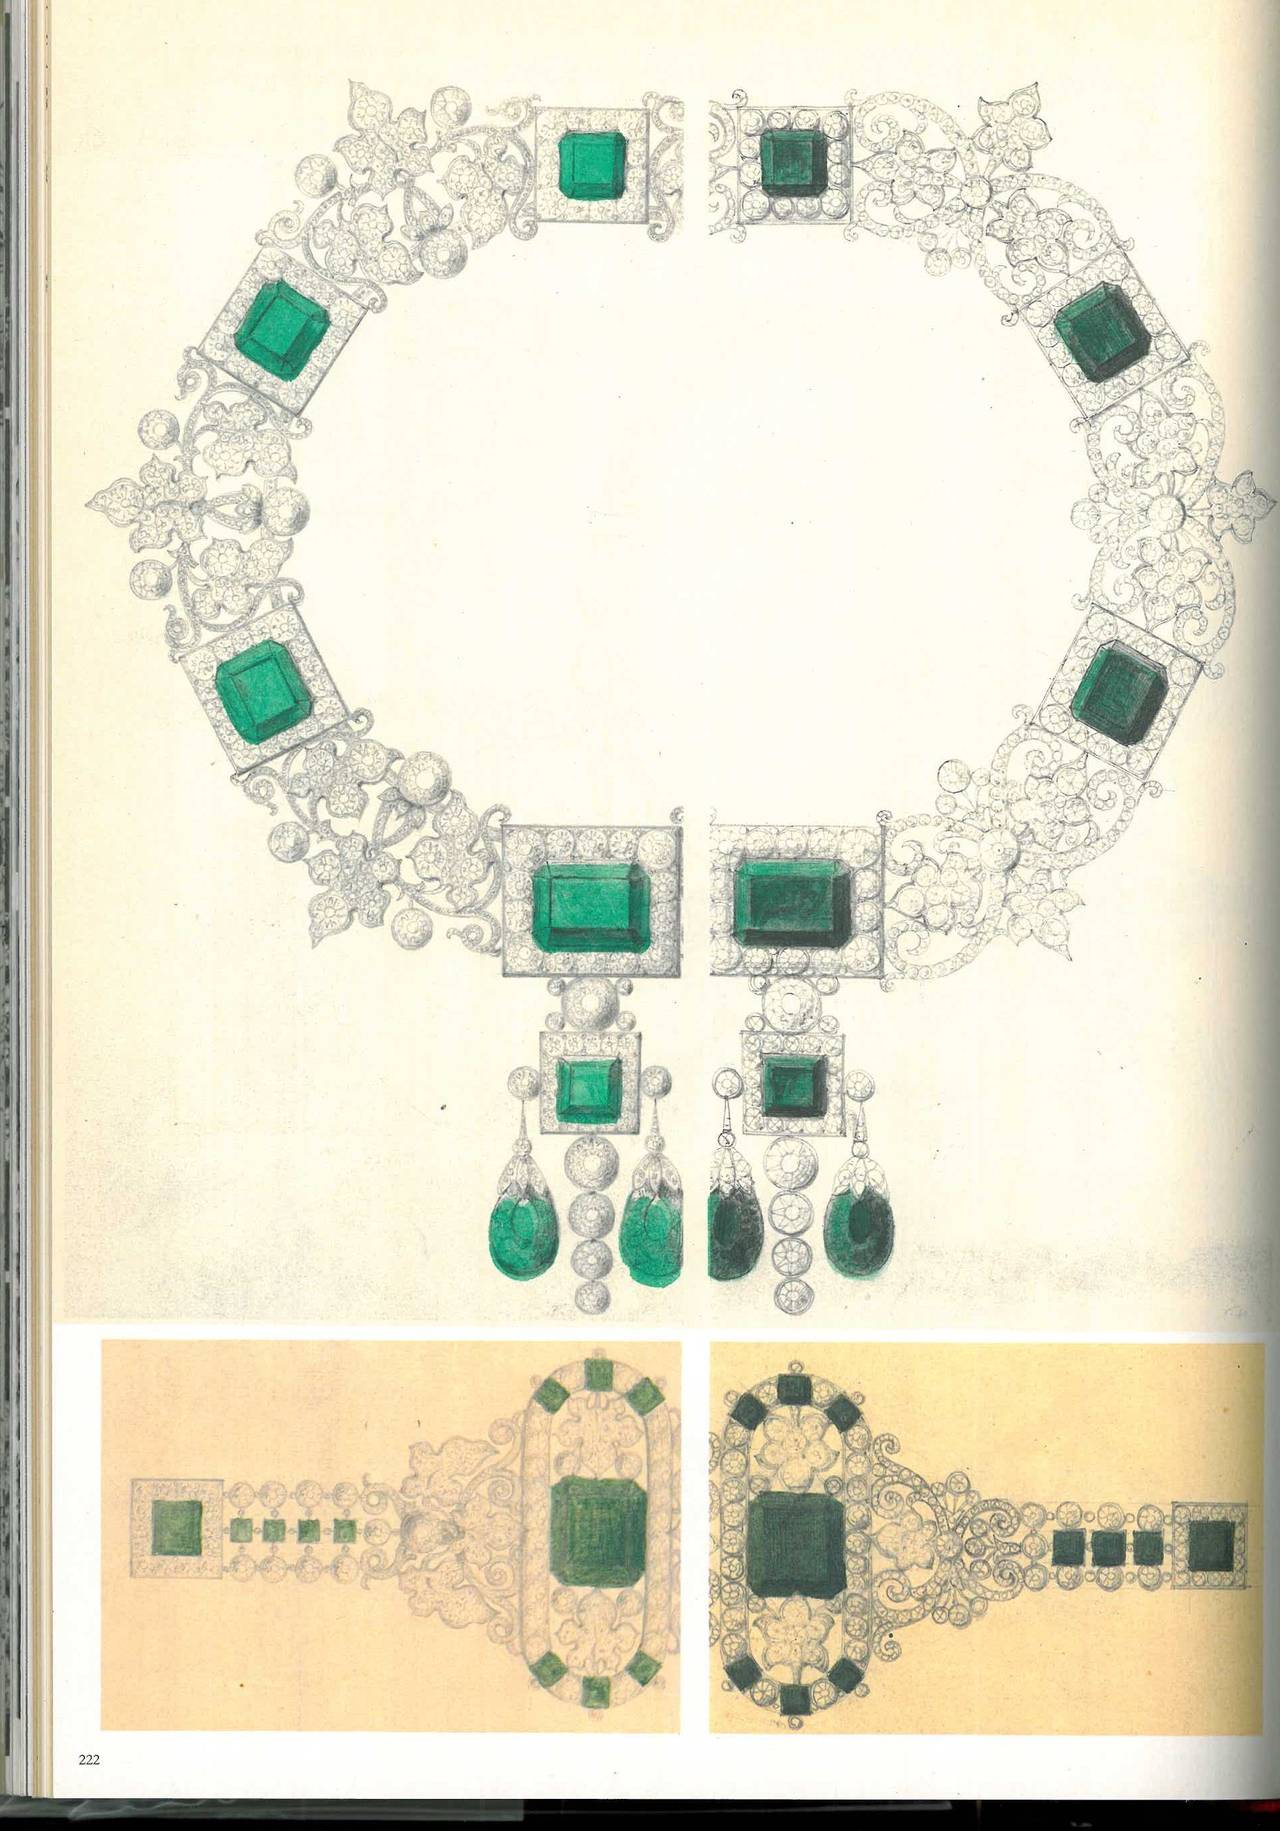 Book of Kochert - Imperial Jewellers in Vienna - Jewellery Designs 1810-1940 For Sale 3